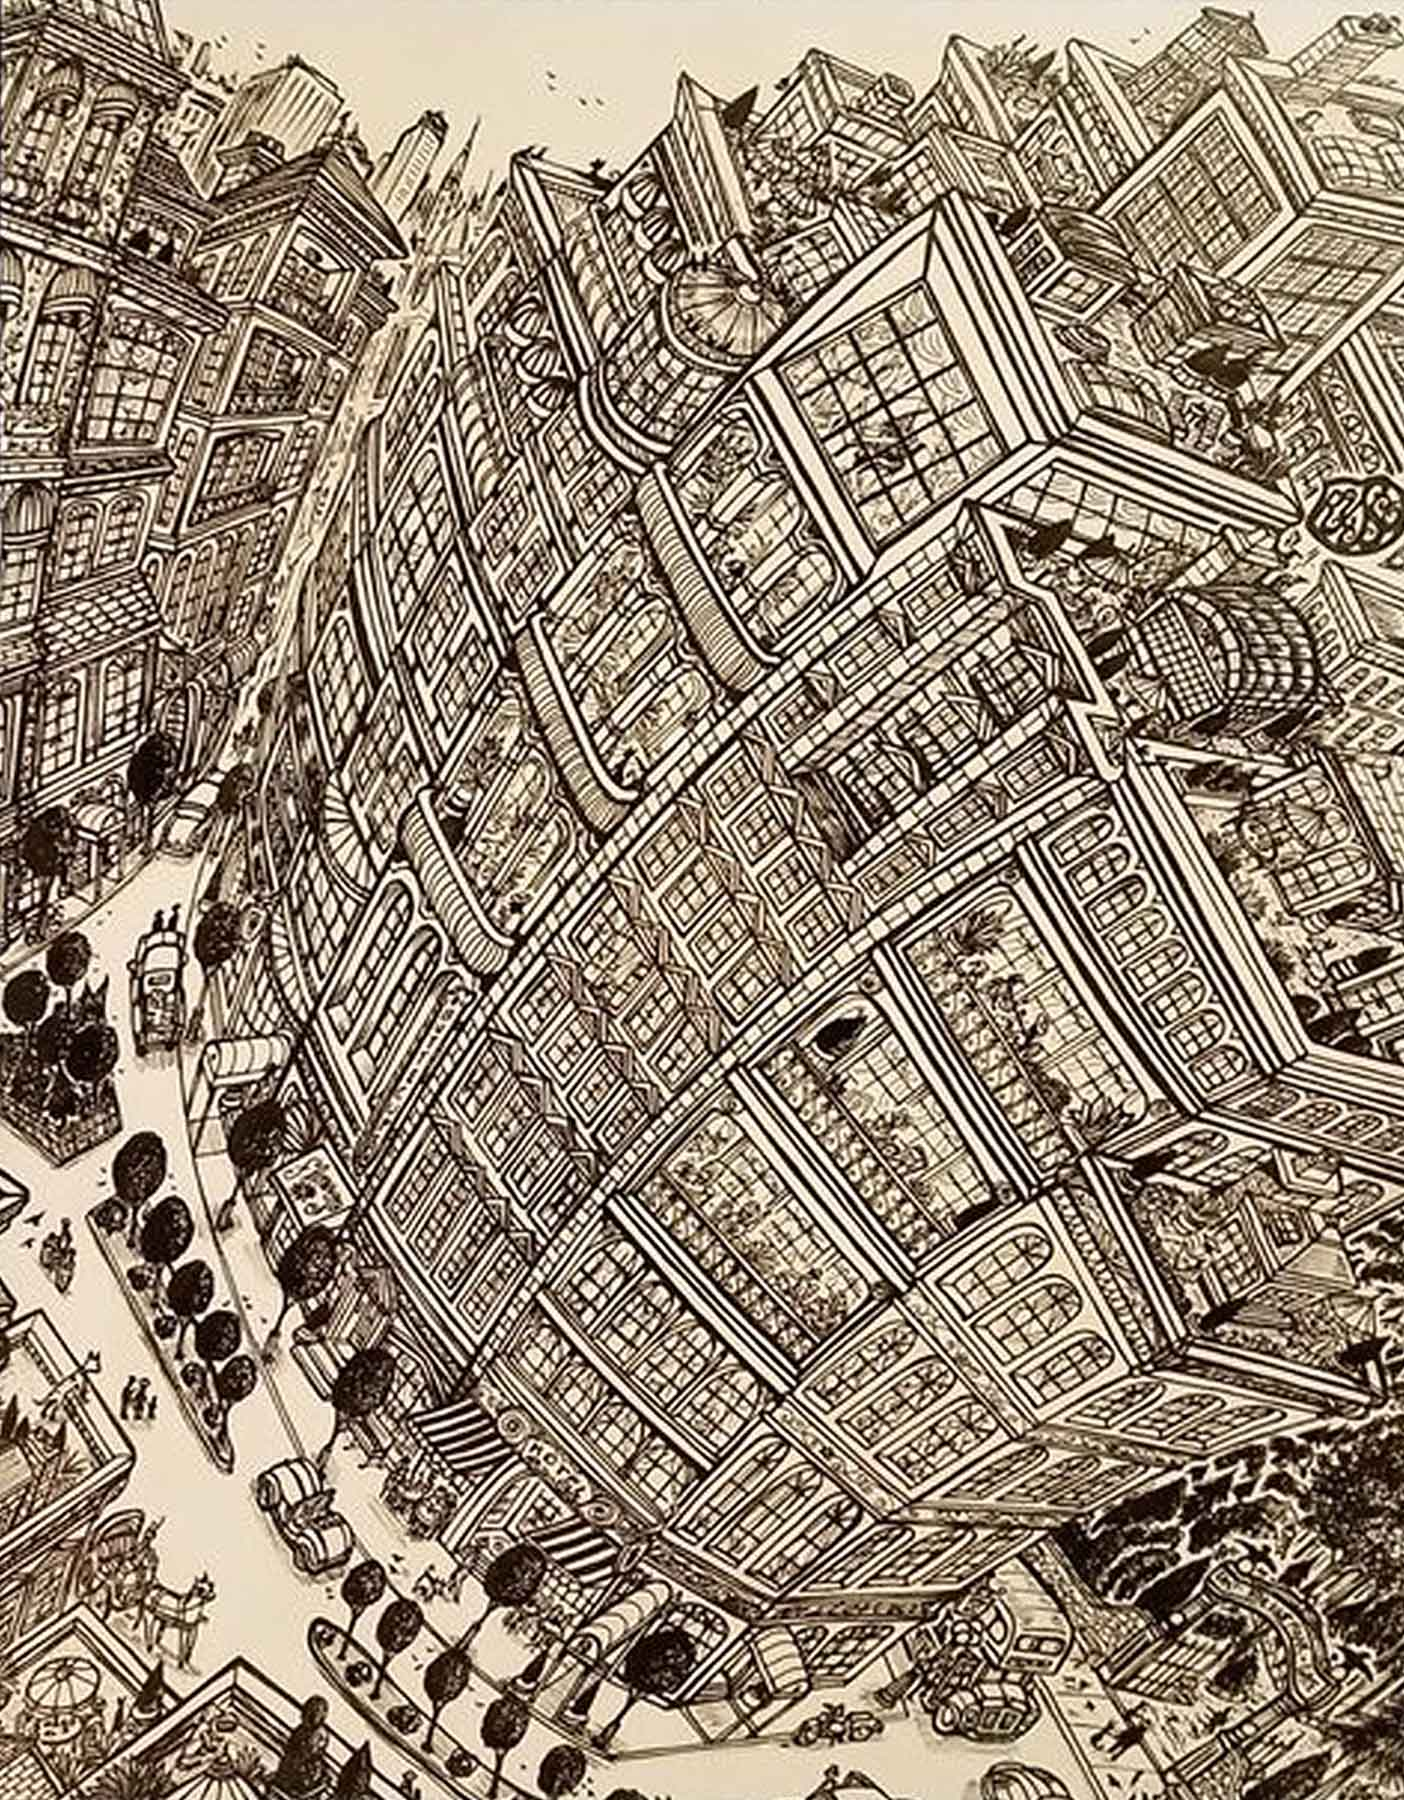 David Russo / Curved City / Pen + Ink Cityscape Series